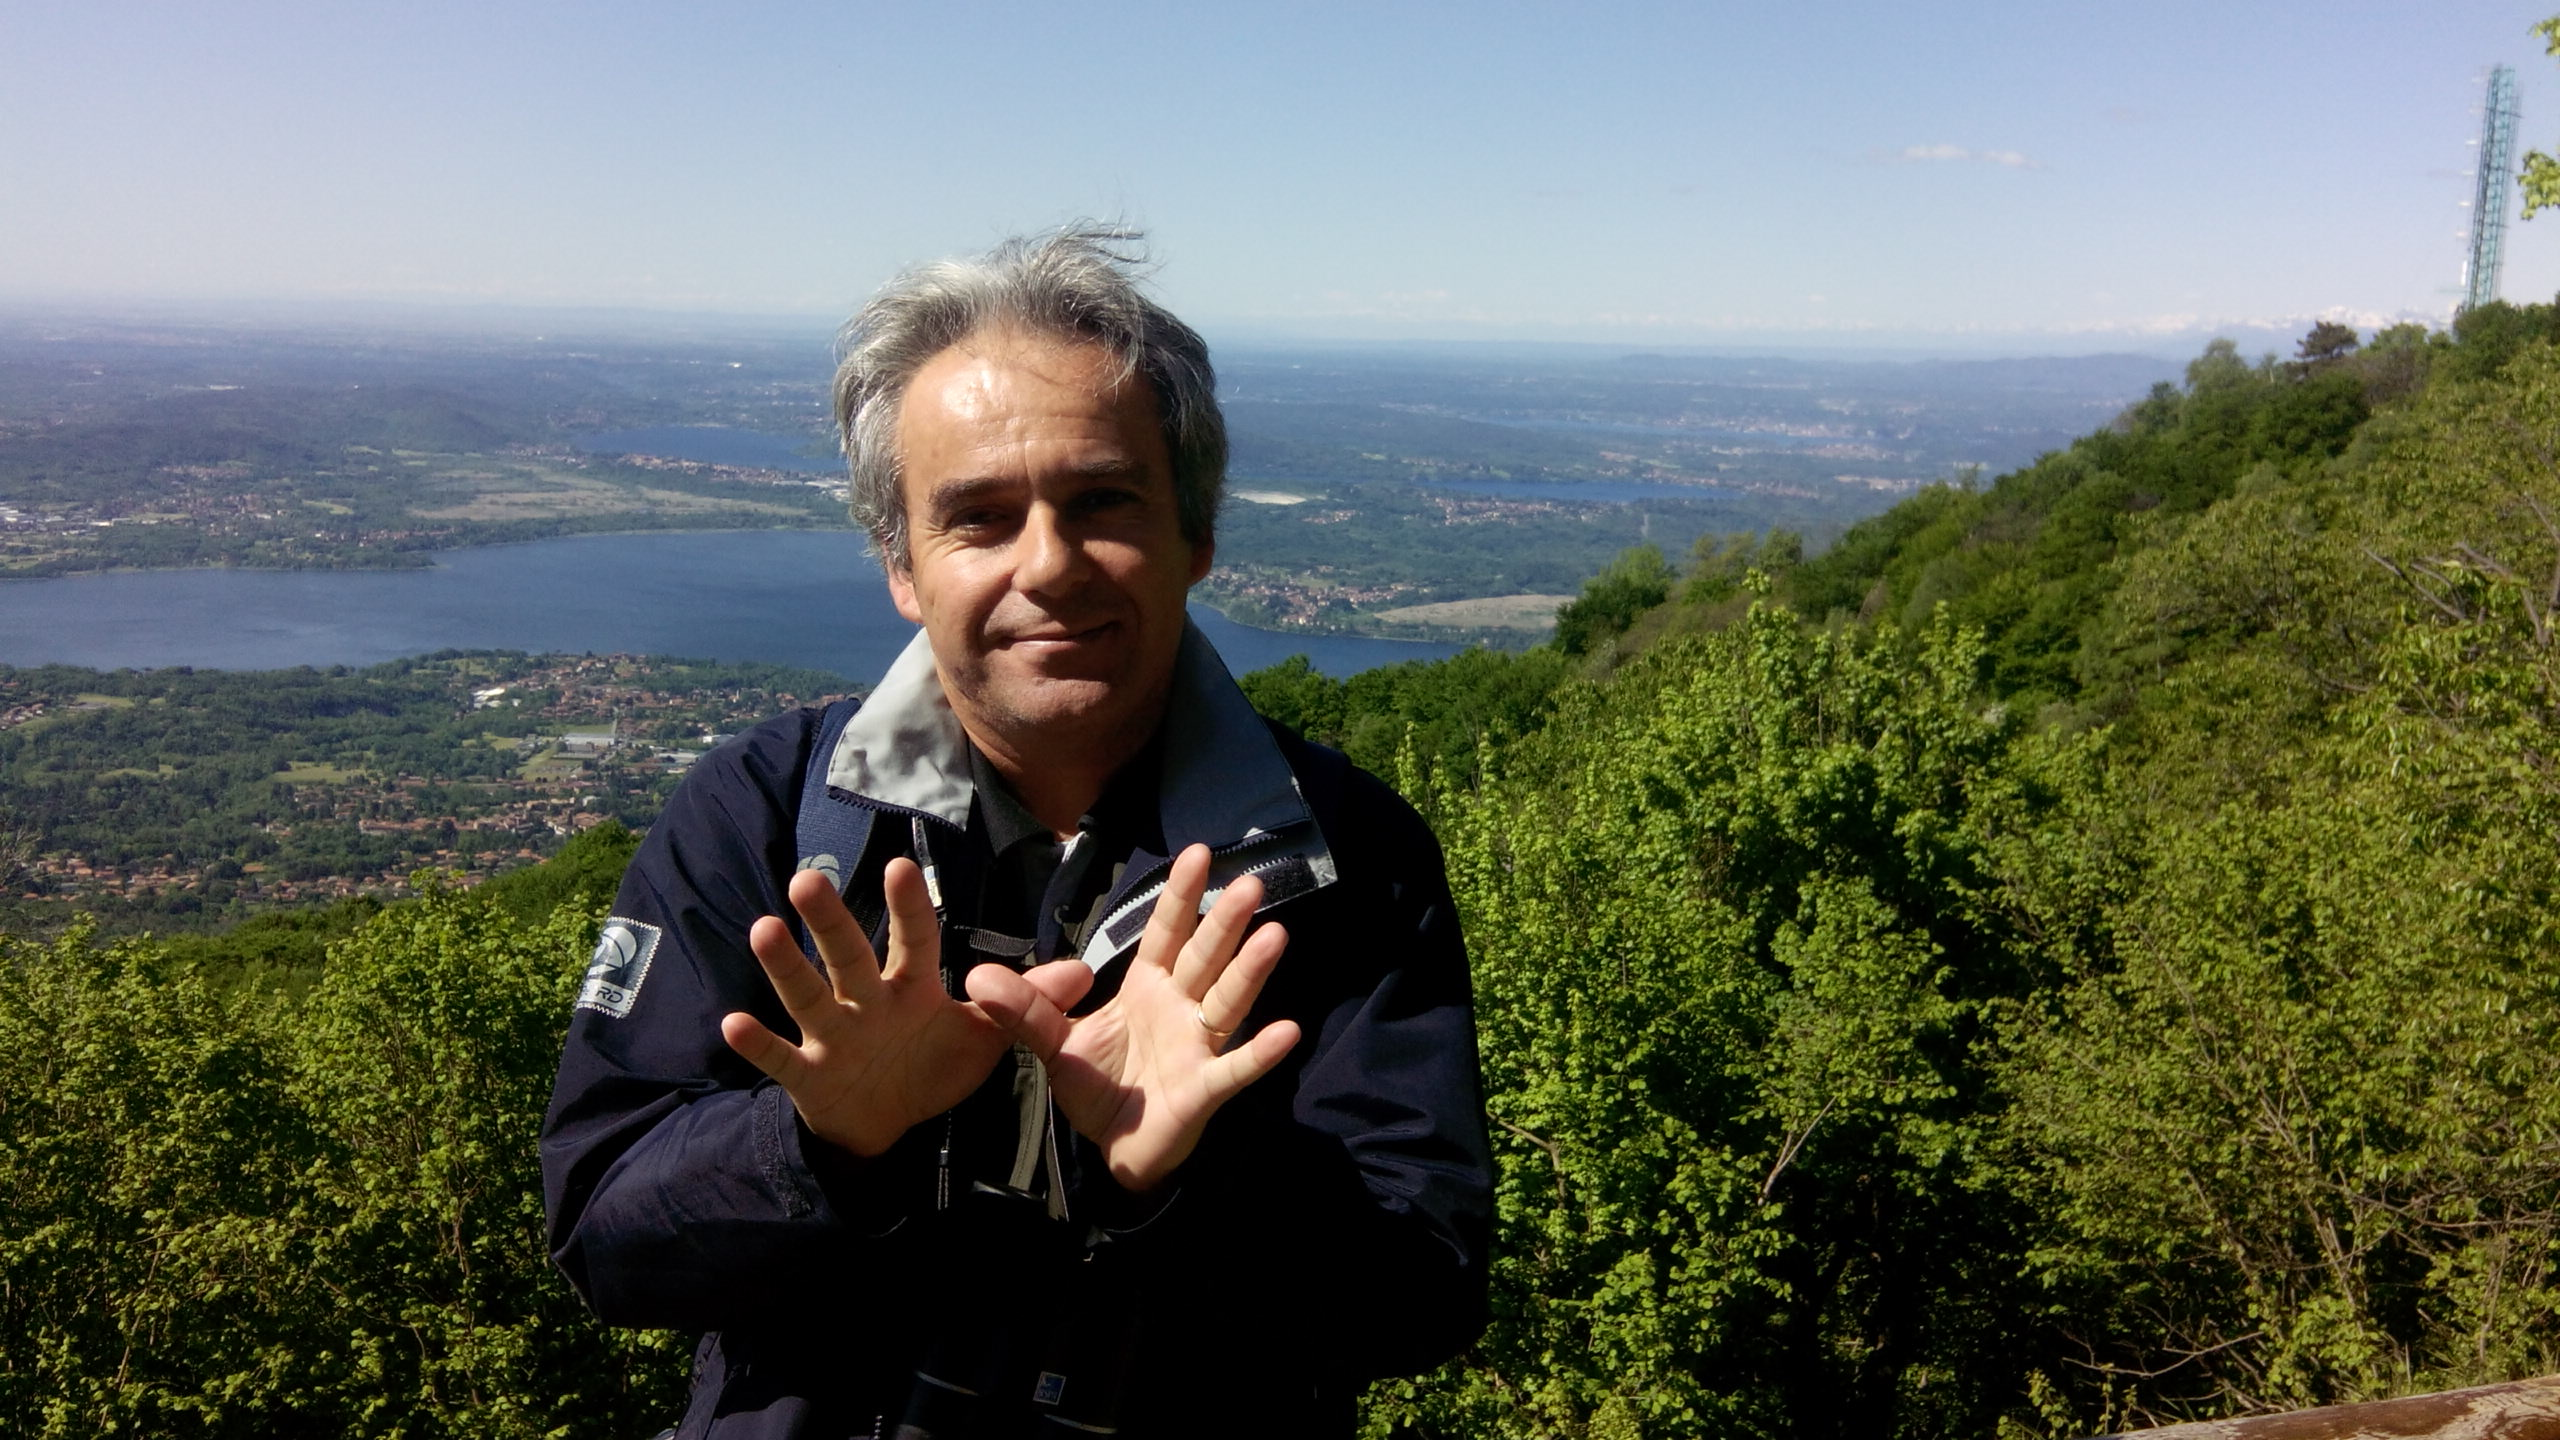 Domingos L from SPEA at BirdLife Meeting in Italy